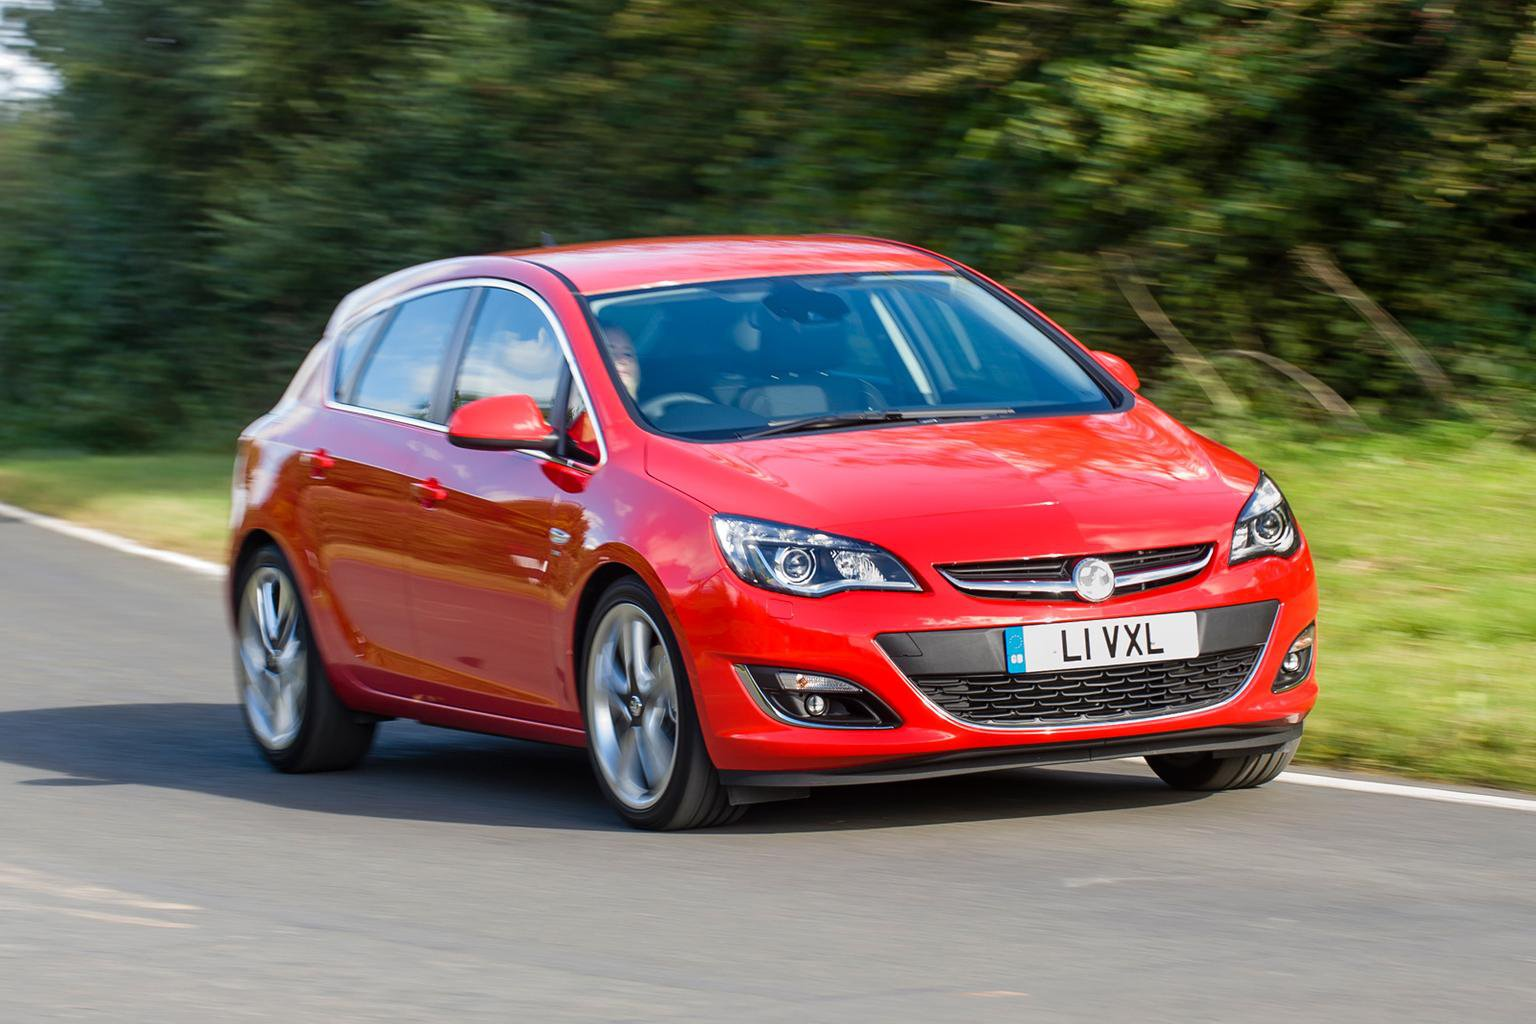 2014 Vauxhall Astra 1.6 CDTi 136 review